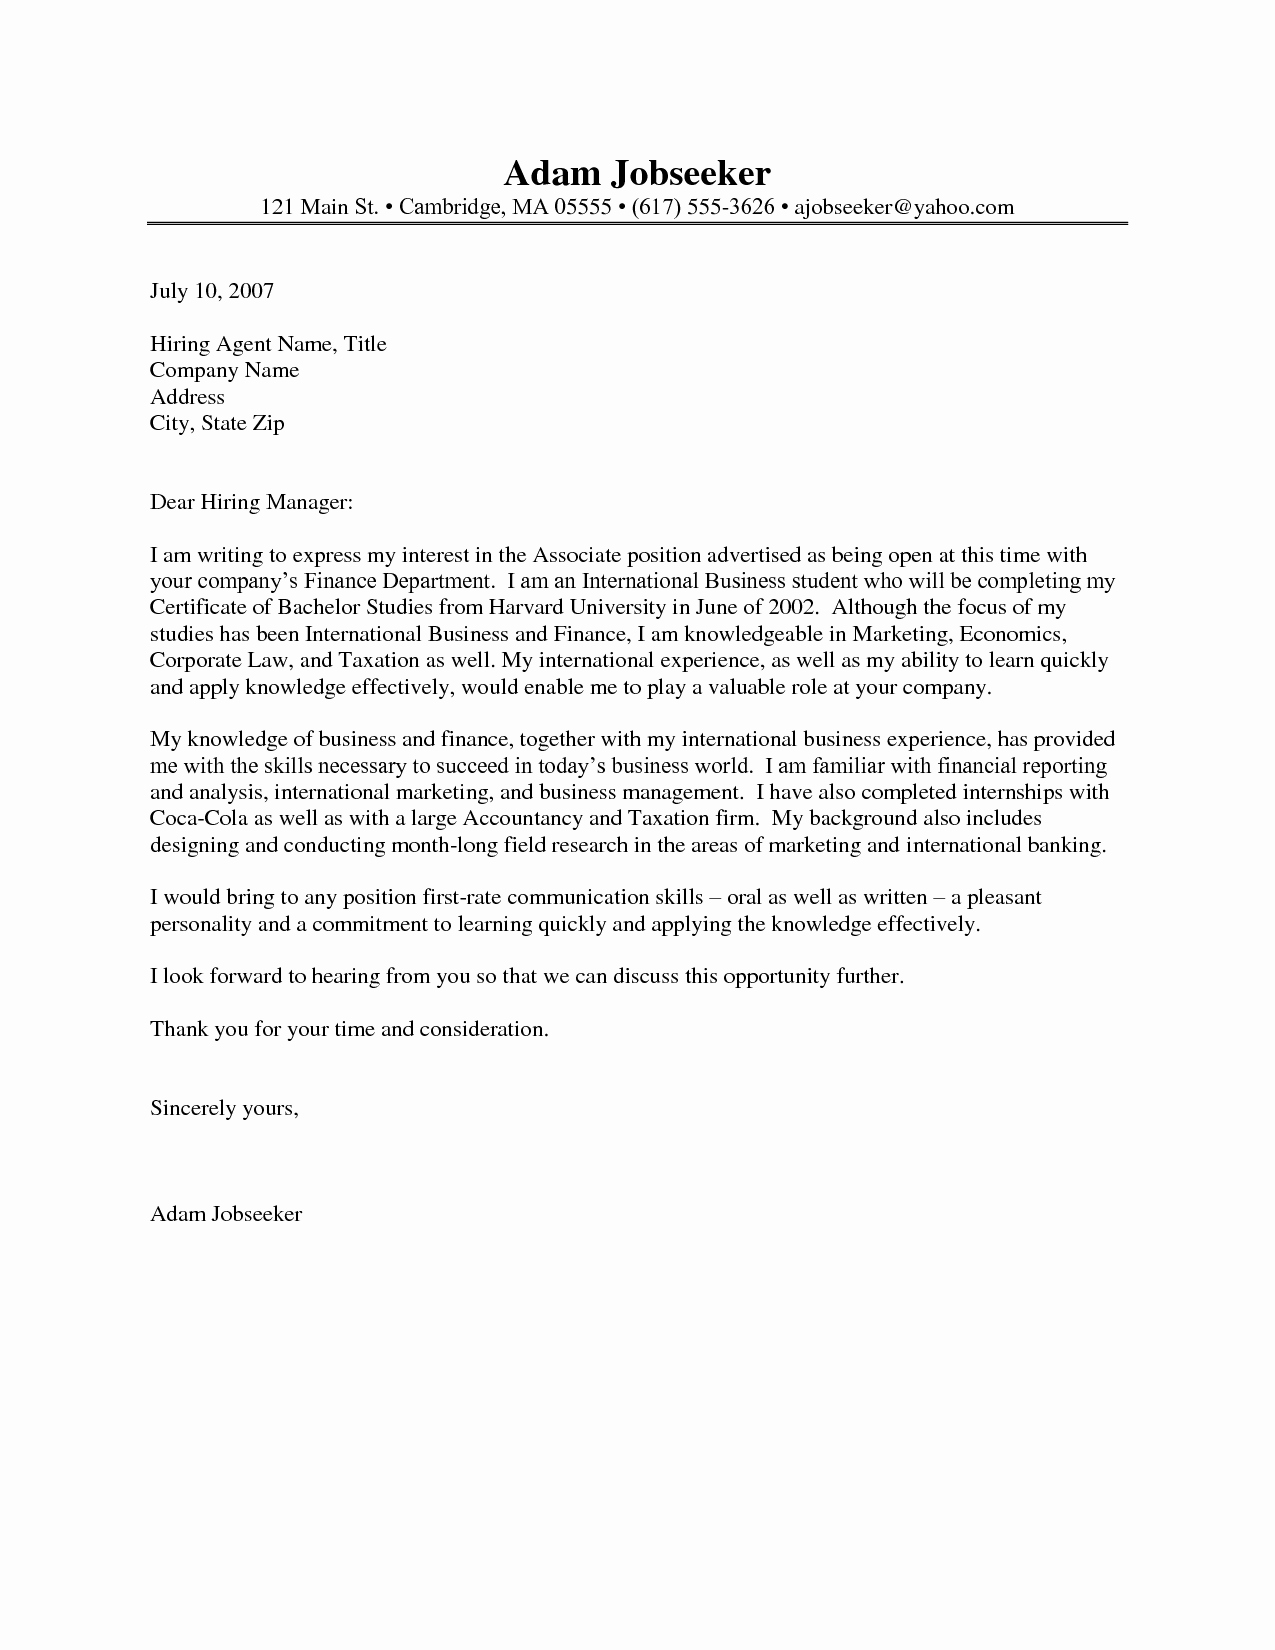 Cover Letter for Internship Examples Luxury Example Cover Letter for Internship